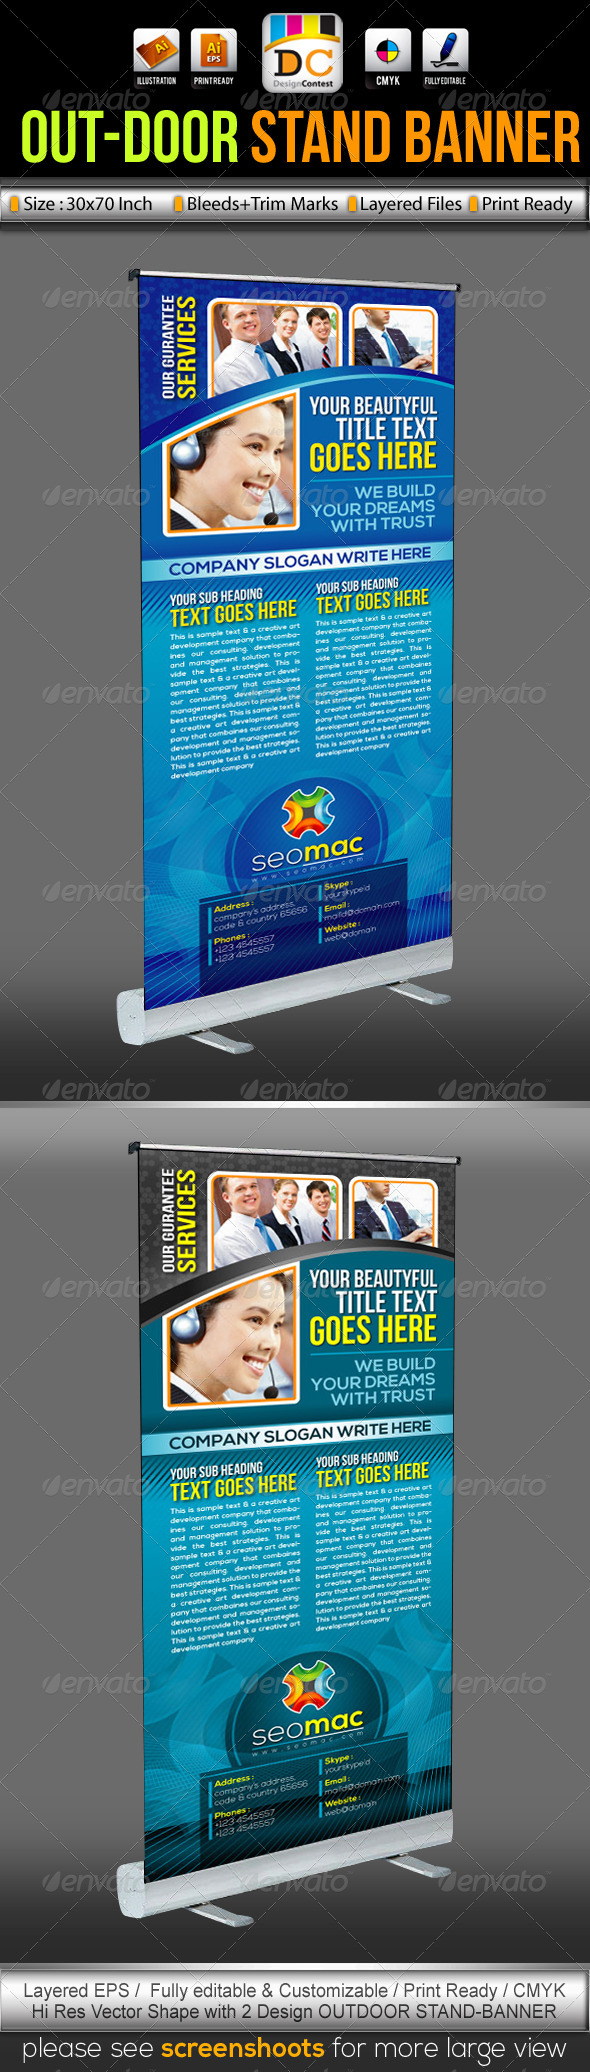 GraphicRiver SeoMac Out-Door Stand Banner Sinage Templates 3477476